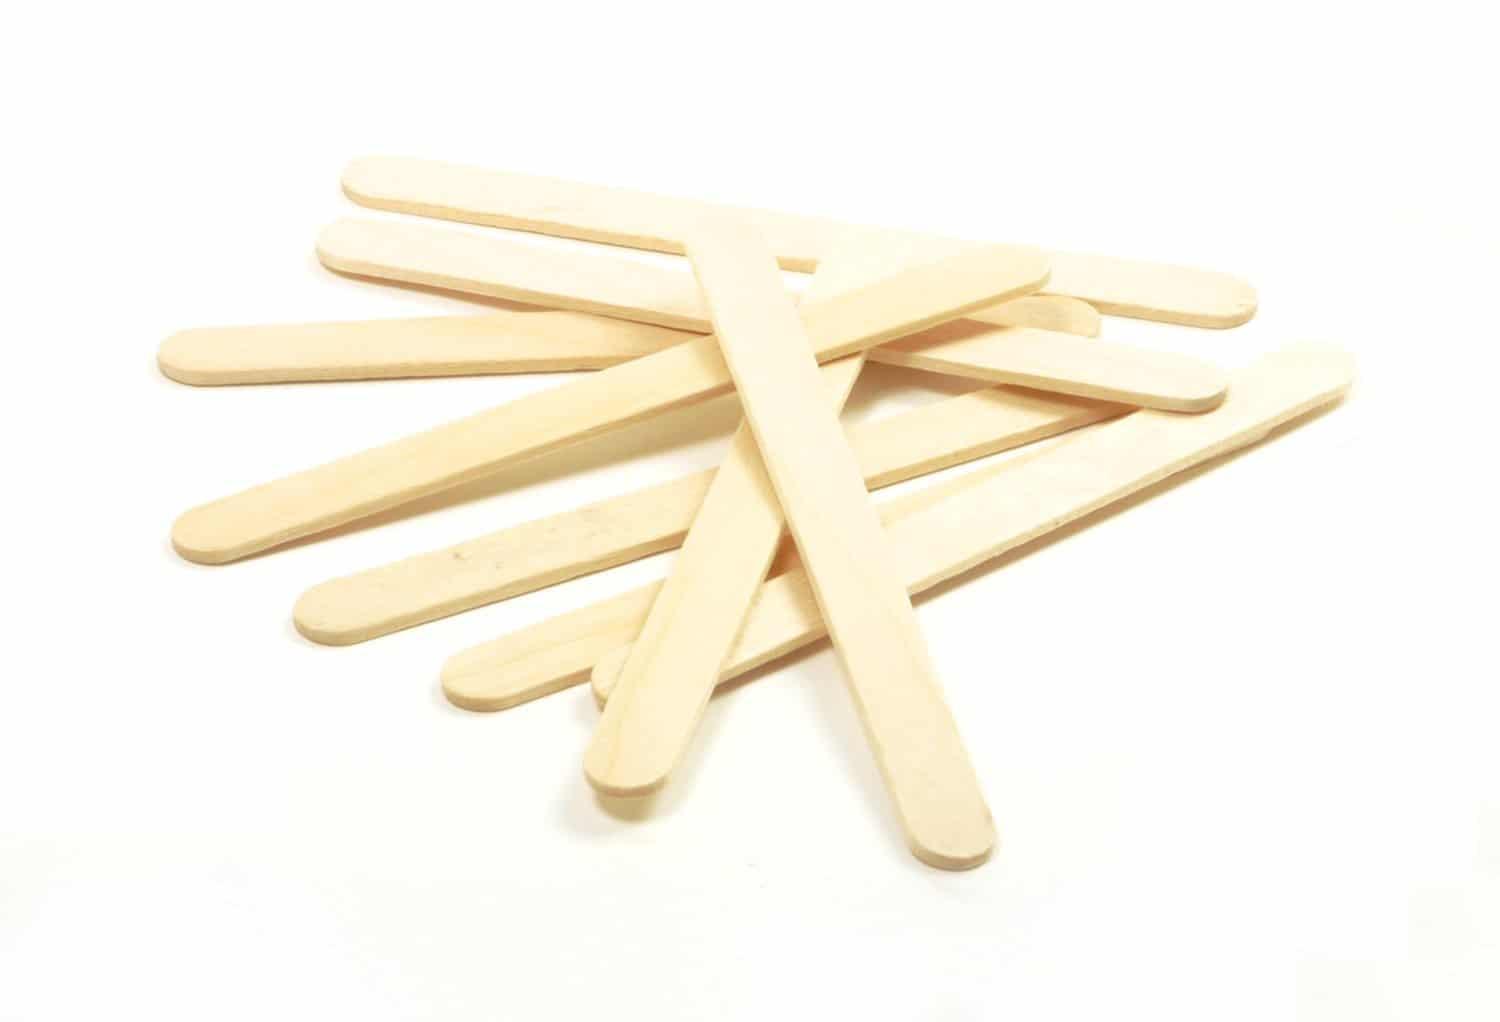 Things To Make With Wood Craft Sticks